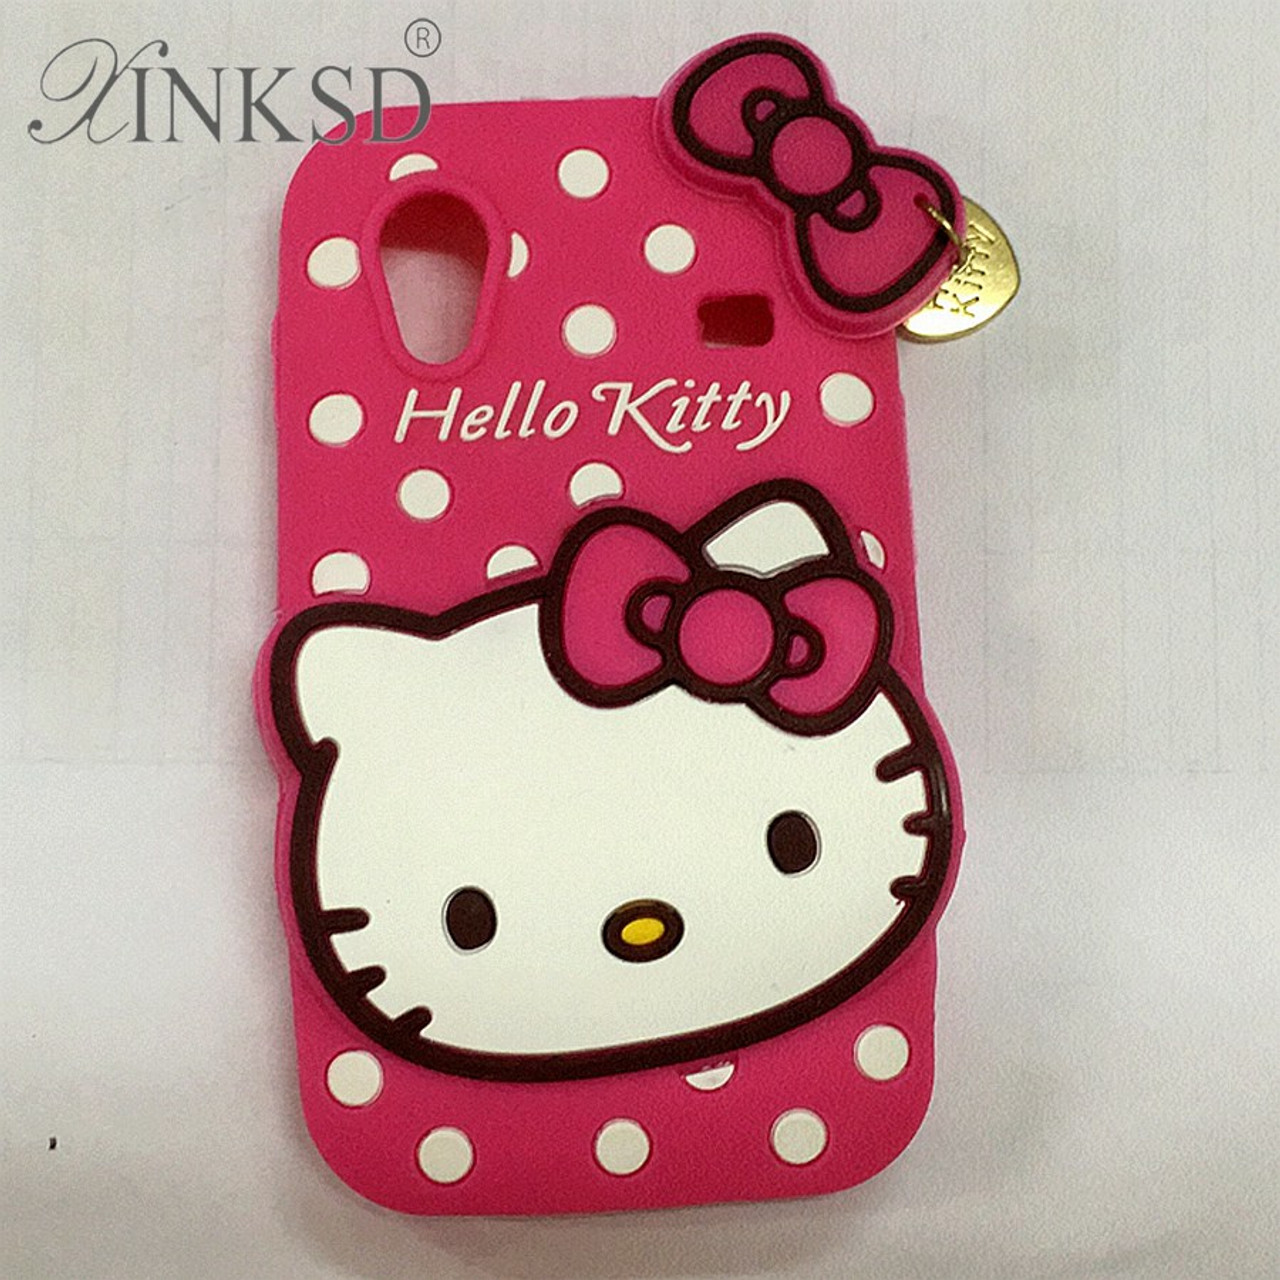 8d42e49e0 ... For Samsung Galaxy Ace S5830 Cases 3D Silicon Hello Kitty Soft Cell  Phone Back Cover for ...